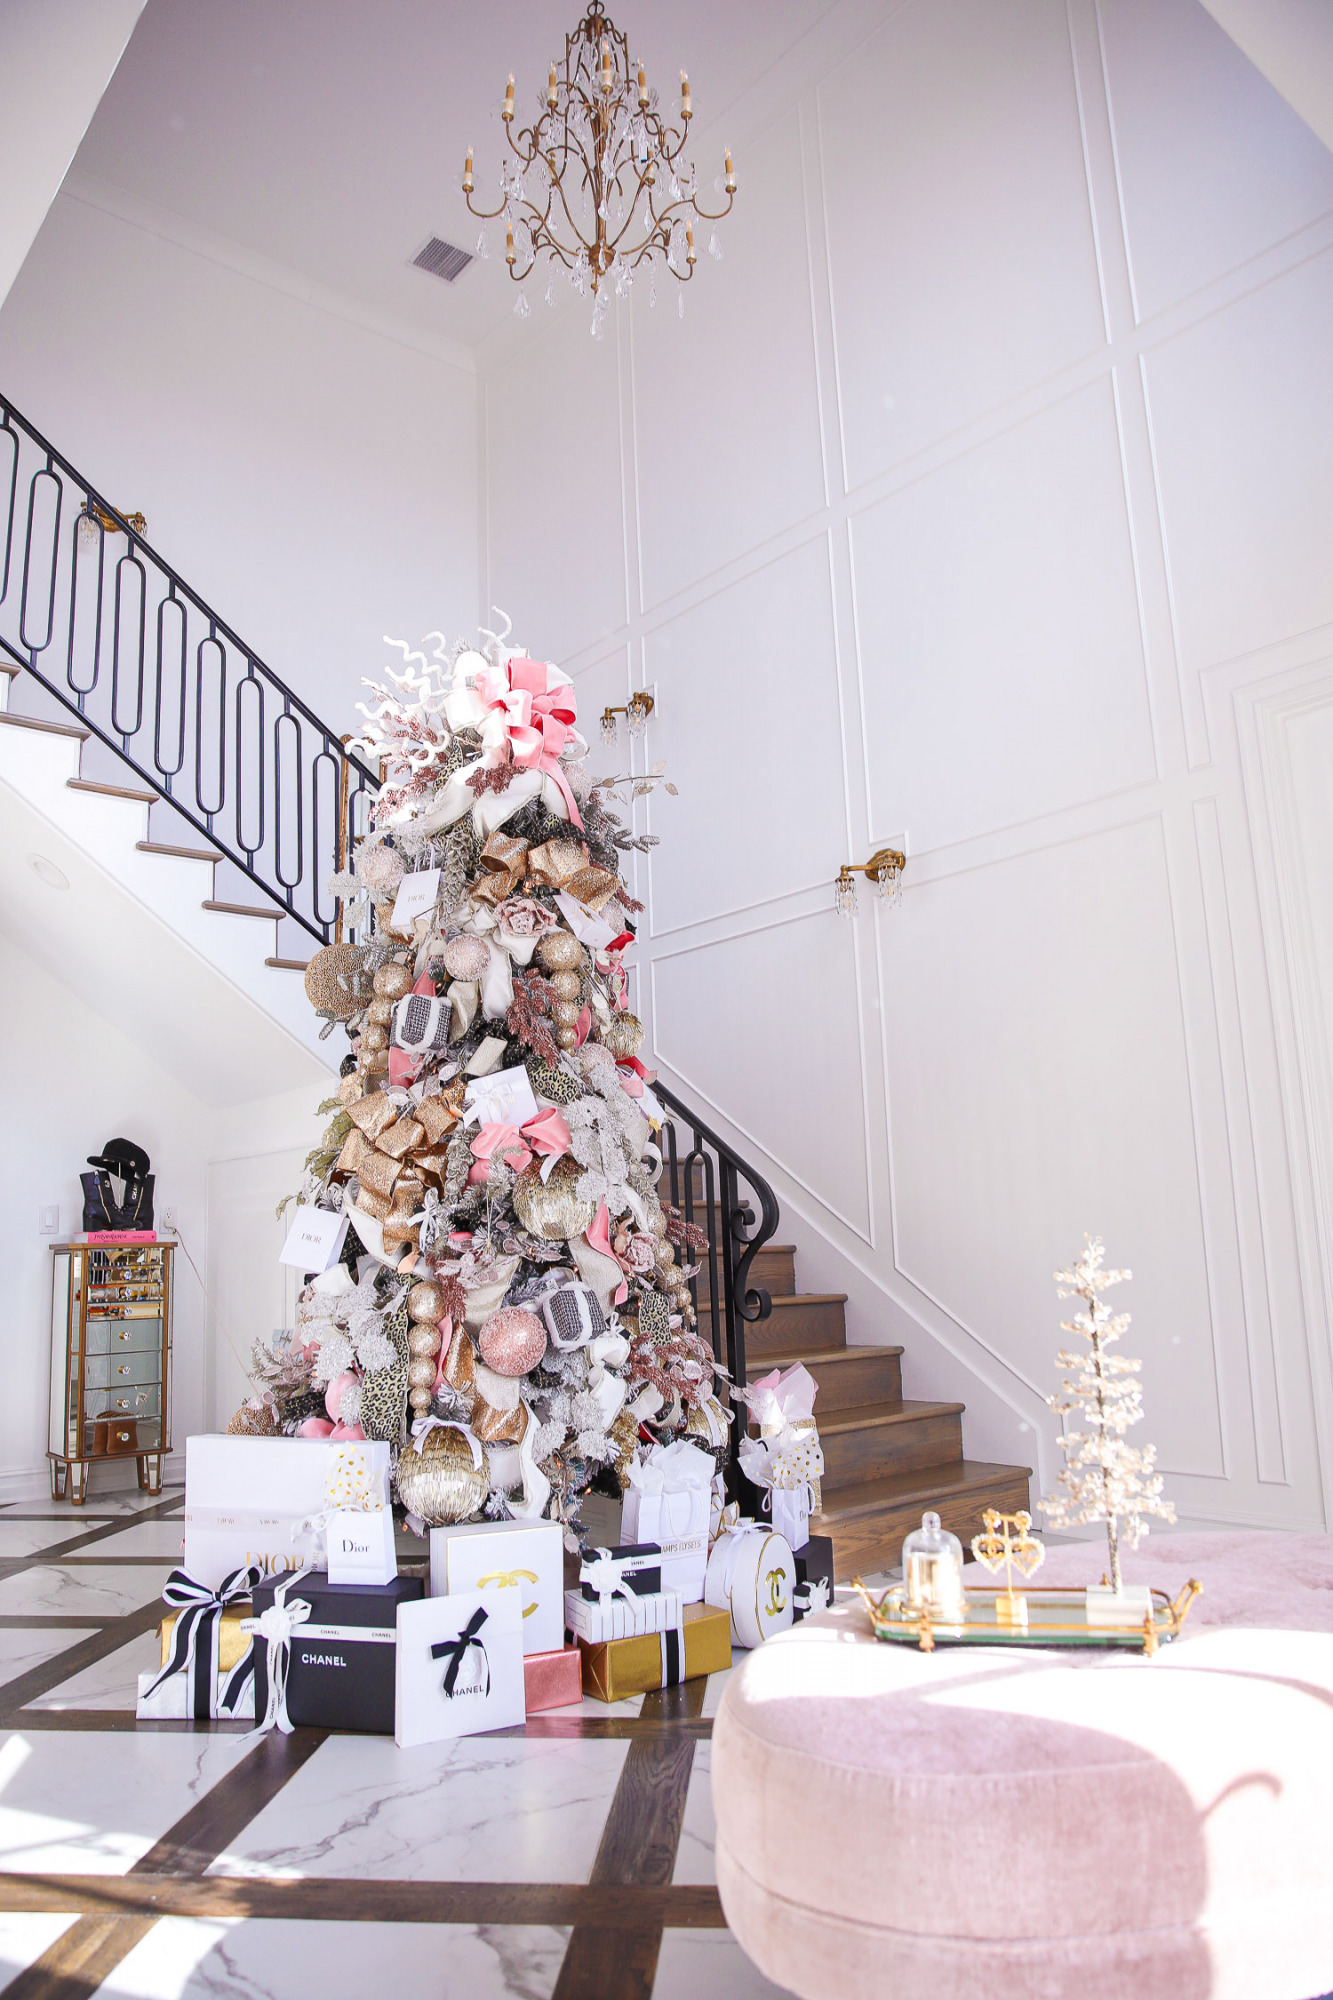 two story closet pinterest, designer chanel christmas tree, unique christmas trees, shop hello holidays, emily gemma christmas tree | Pink and Gold Christmas Tree by popular US life and style blog, The Sweetest Thing: image of a two story closet decorated with pink and gold Christmas Tree with high end retailer bags underneath.